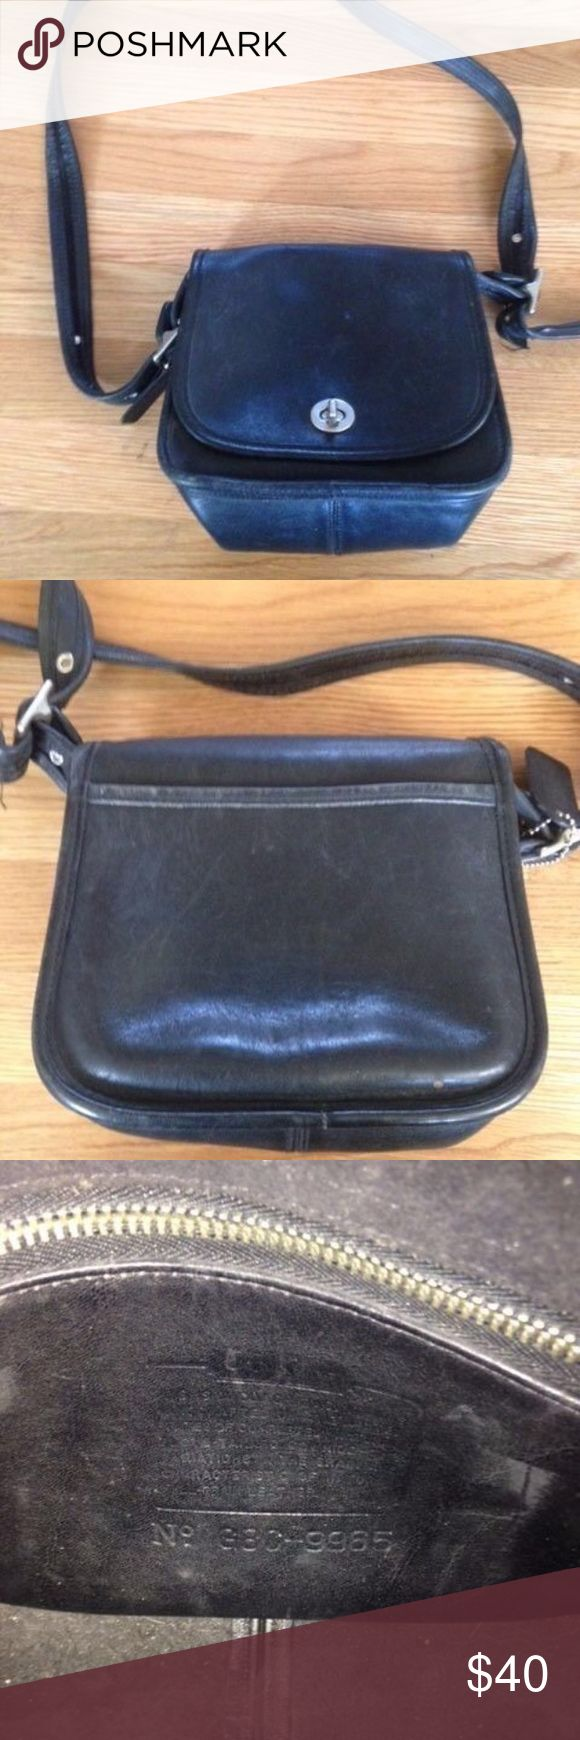 Vintage Coach Legacy Trail Saddle bag- black Great condition- see photos for details. Coach Bags Crossbody Bags